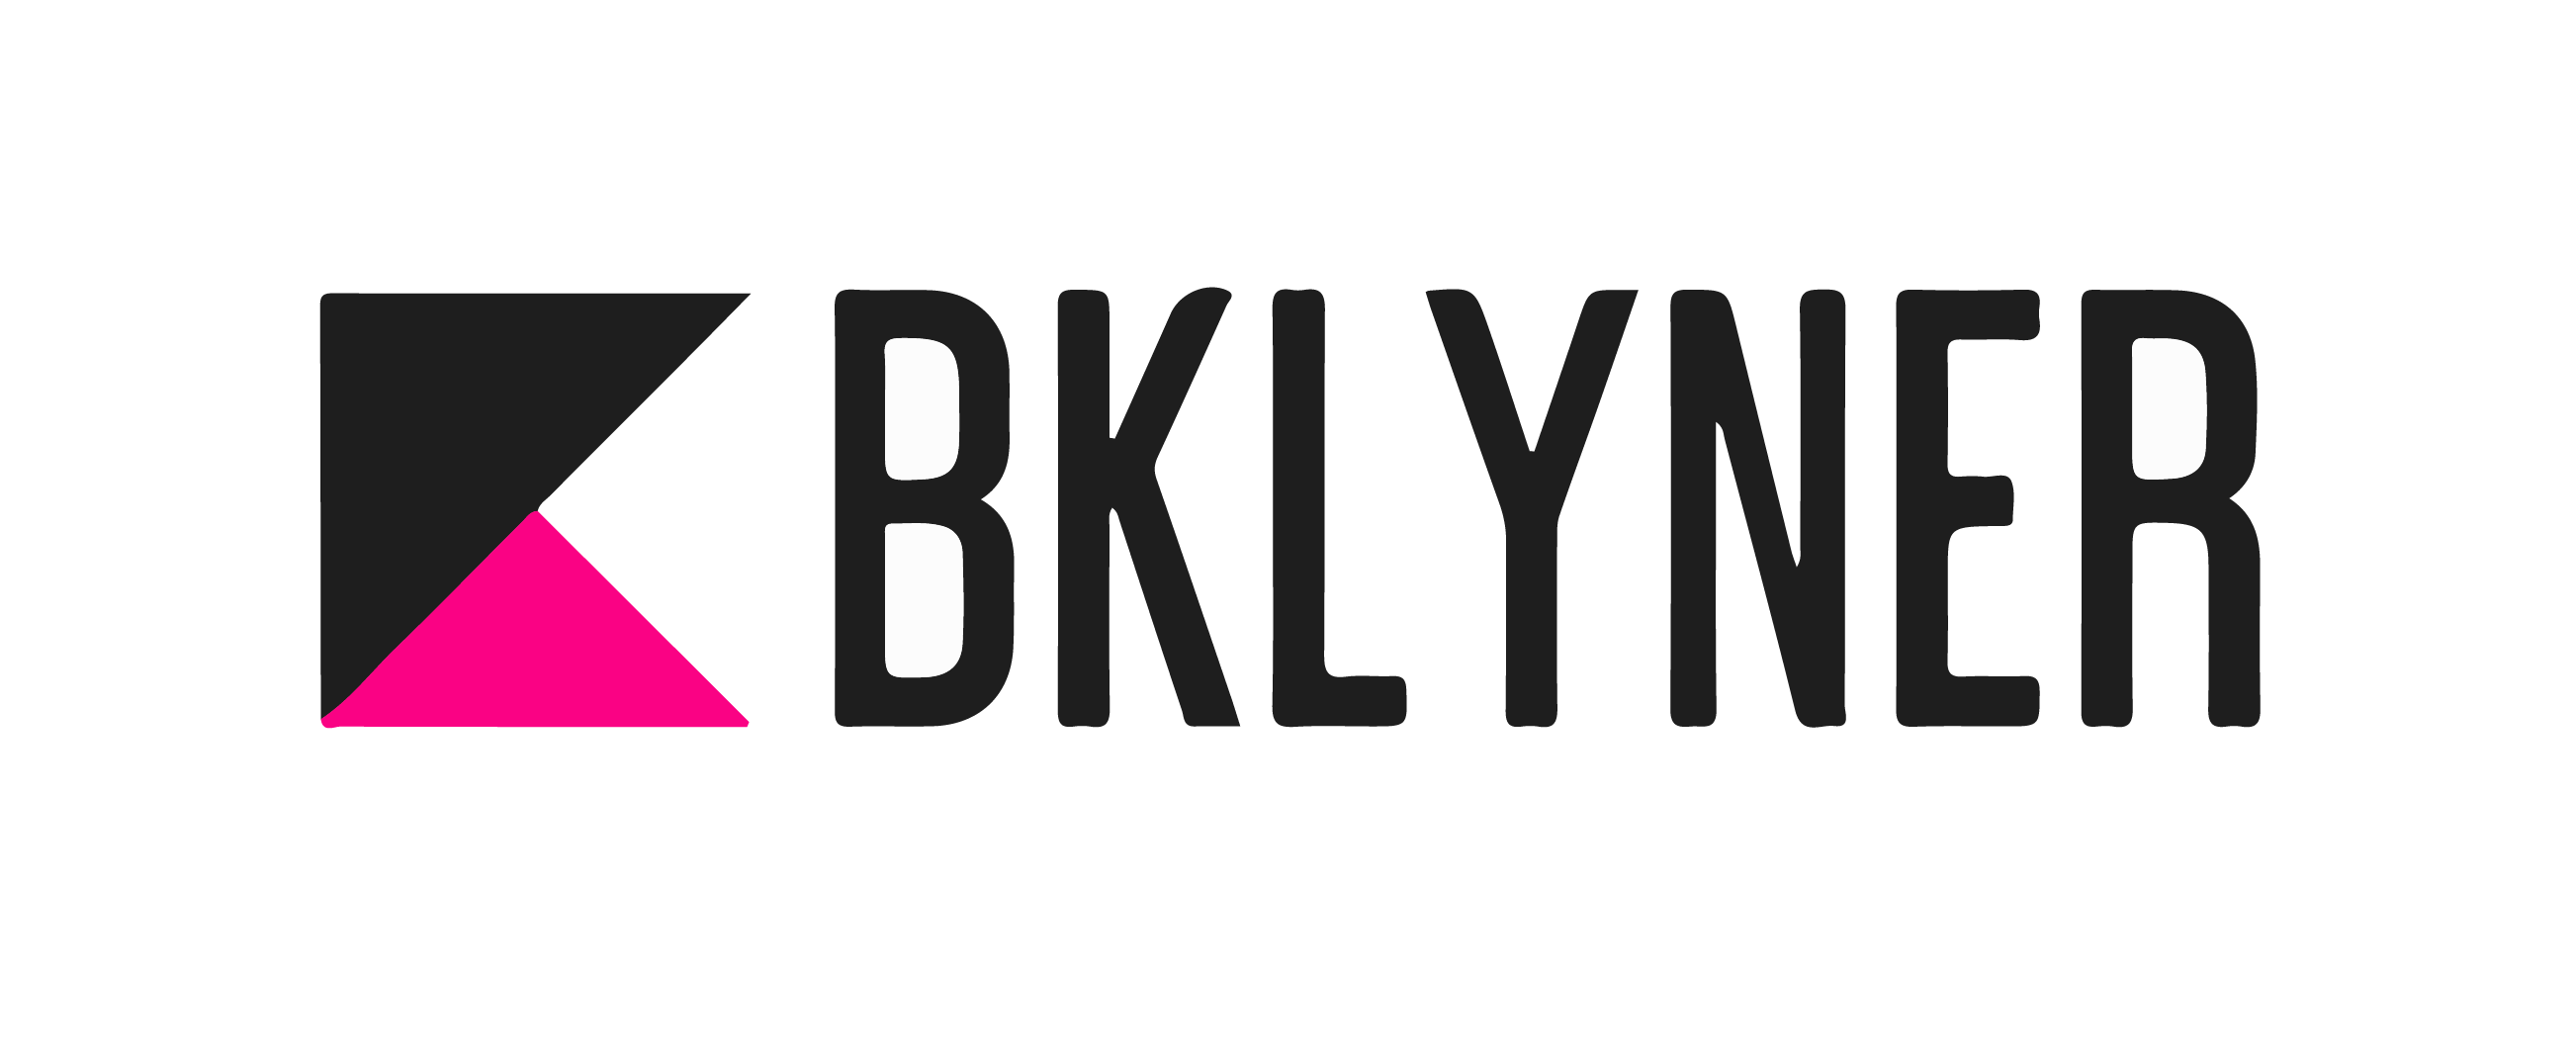 http://intersectionatthejunction.com/content/4-about/1-press/bklyner-logo-01.png